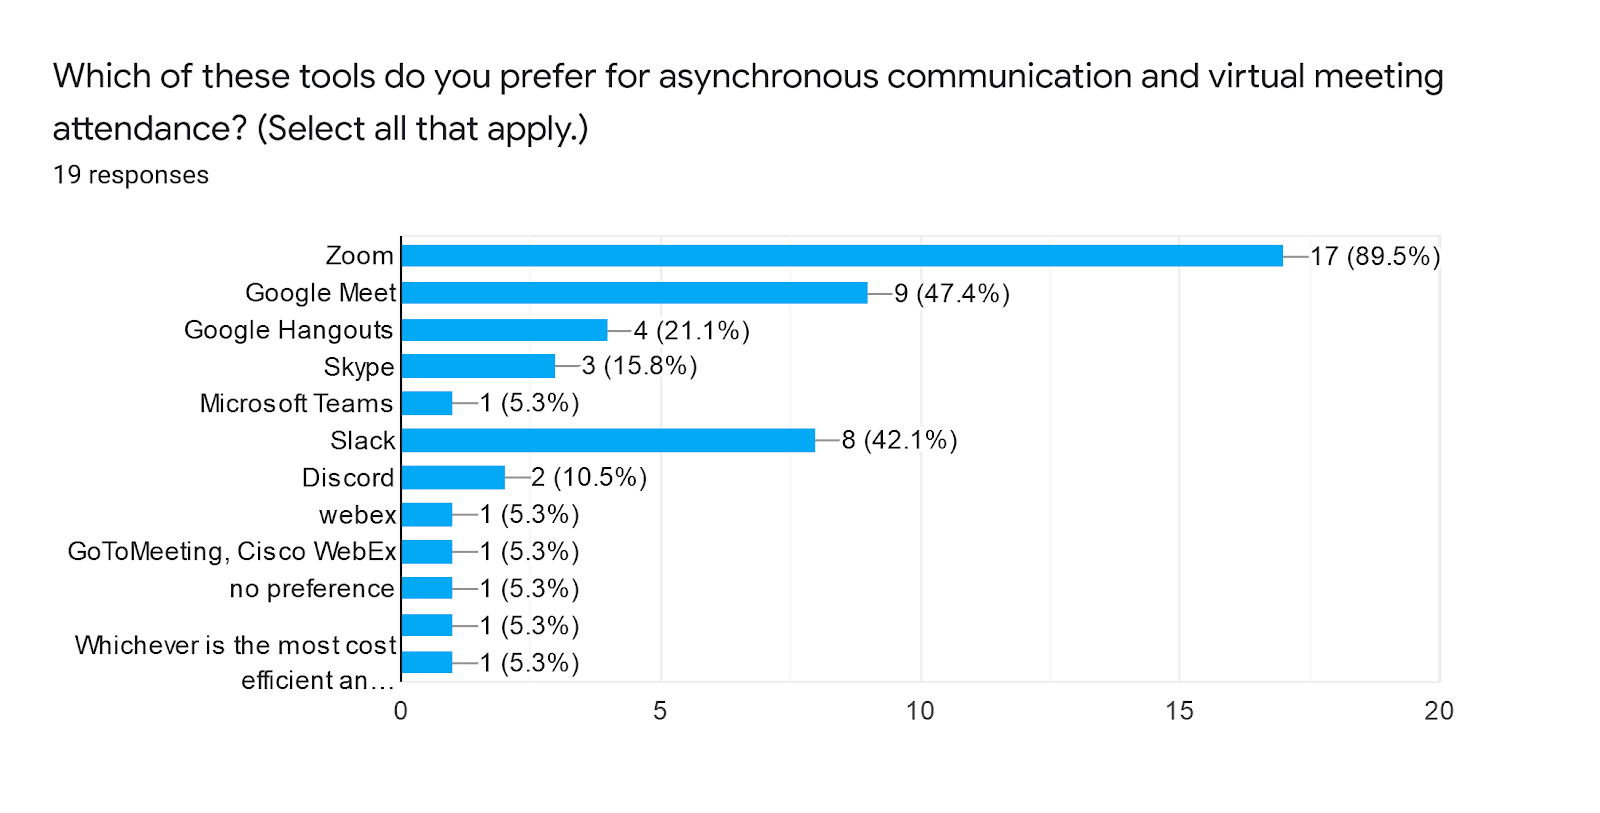 Forms response chart. Question title: Which of these tools do you prefer for asynchronous communication and virtual meeting attendance? (Select all that apply.). Number of responses: 19 responses.